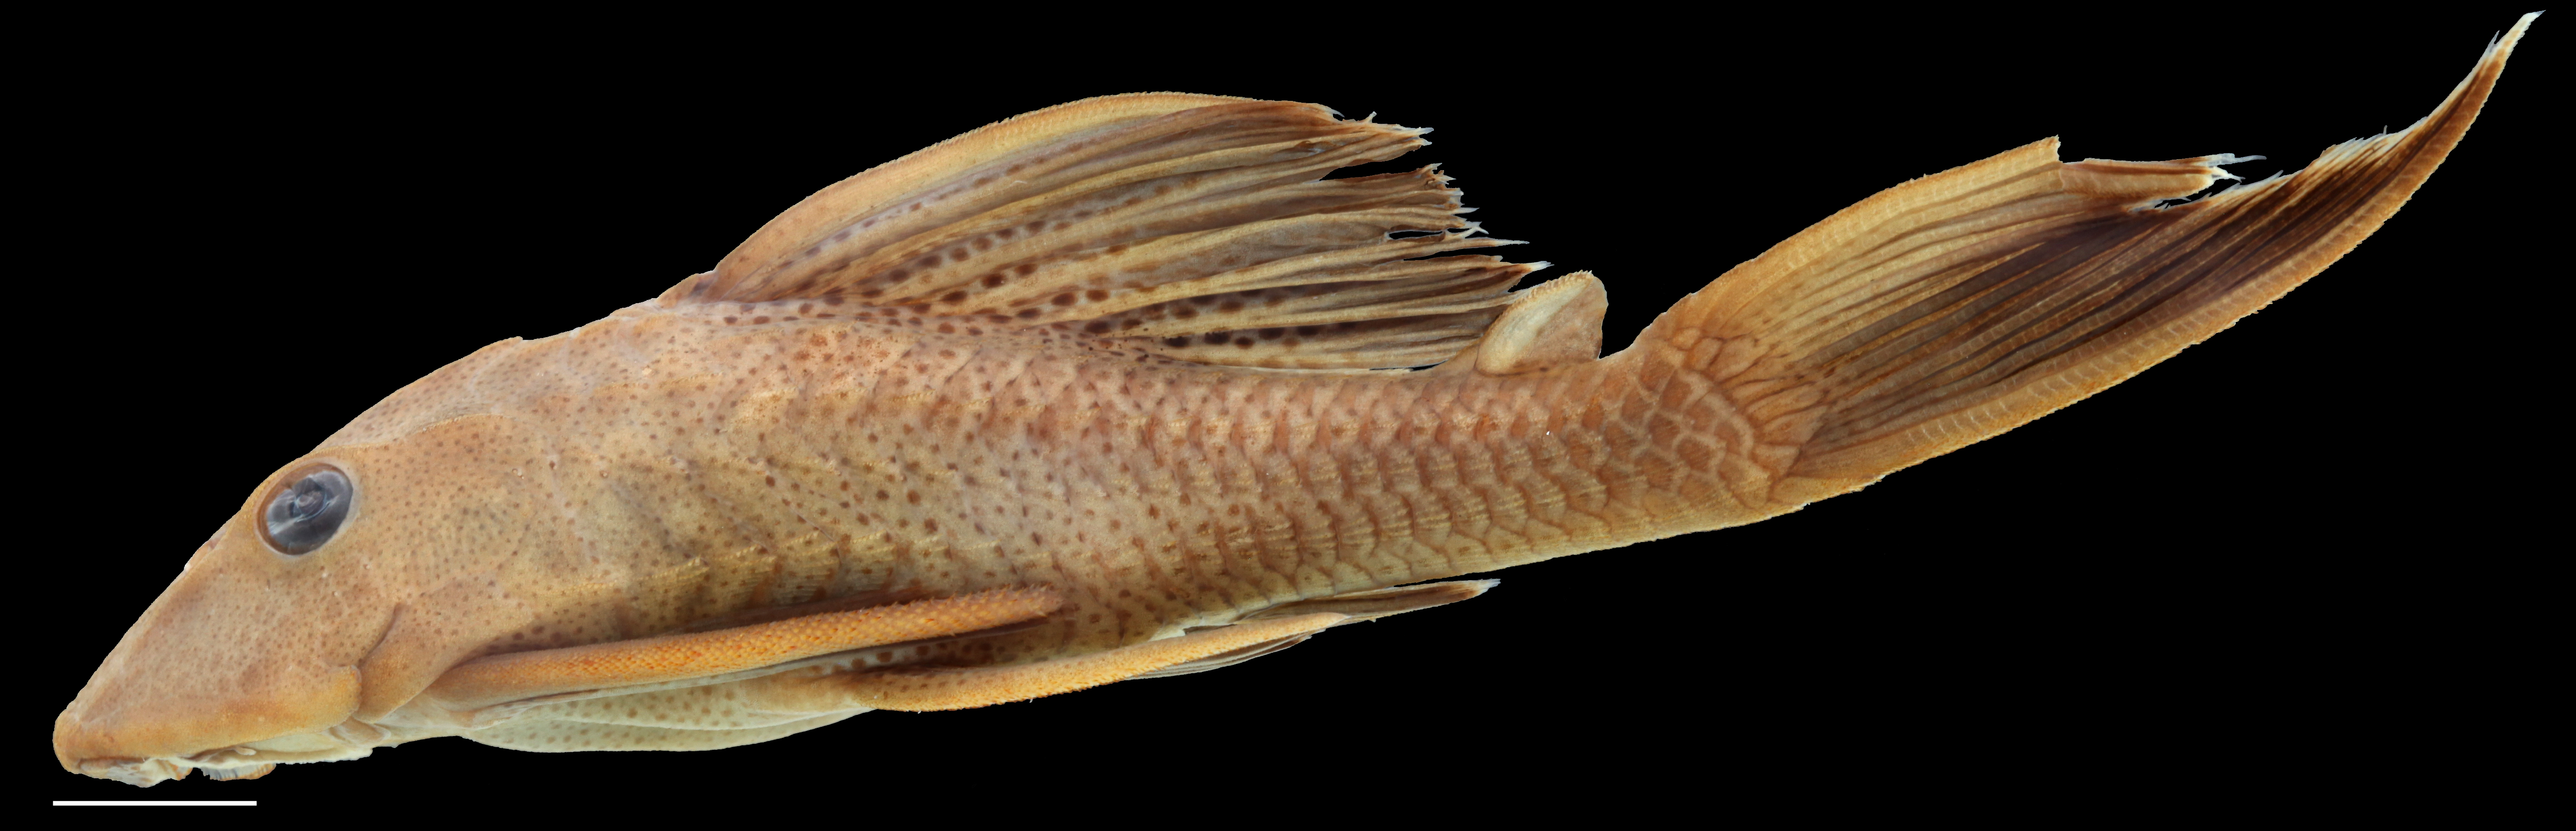 Paratype of <em>Hypostomus rhantos</em> IAvH-P-13958_Lateral, 87.7 mm SL (scale bar = 1 cm). Photograph by C. DoNascimiento